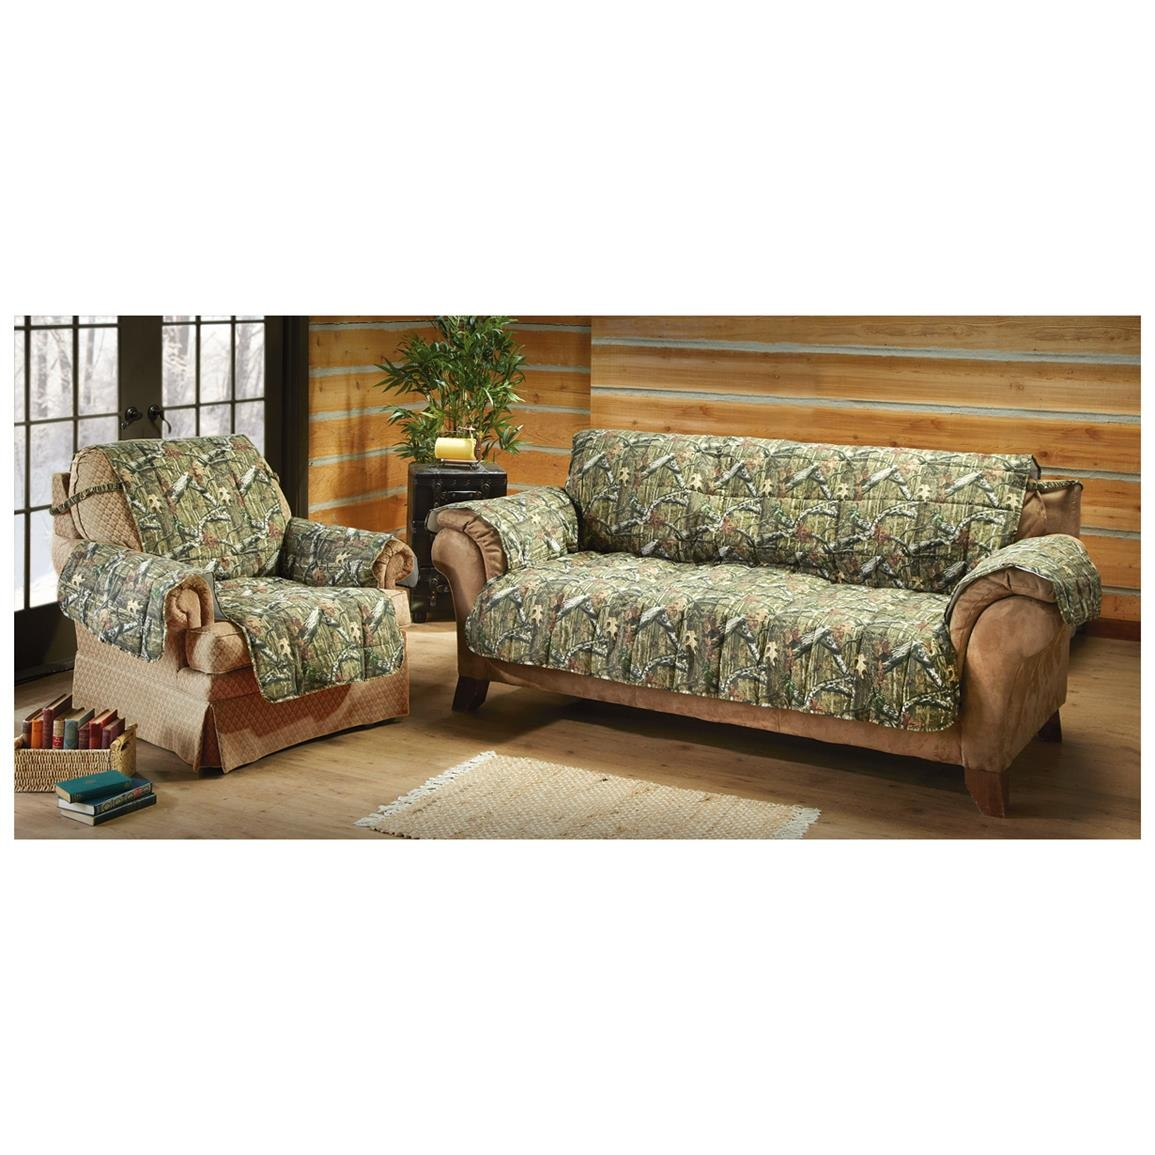 Mossy Oak Camo Furniture Covers 647980 Furniture Covers At For Camo Sofa Cover (#9 of 12)